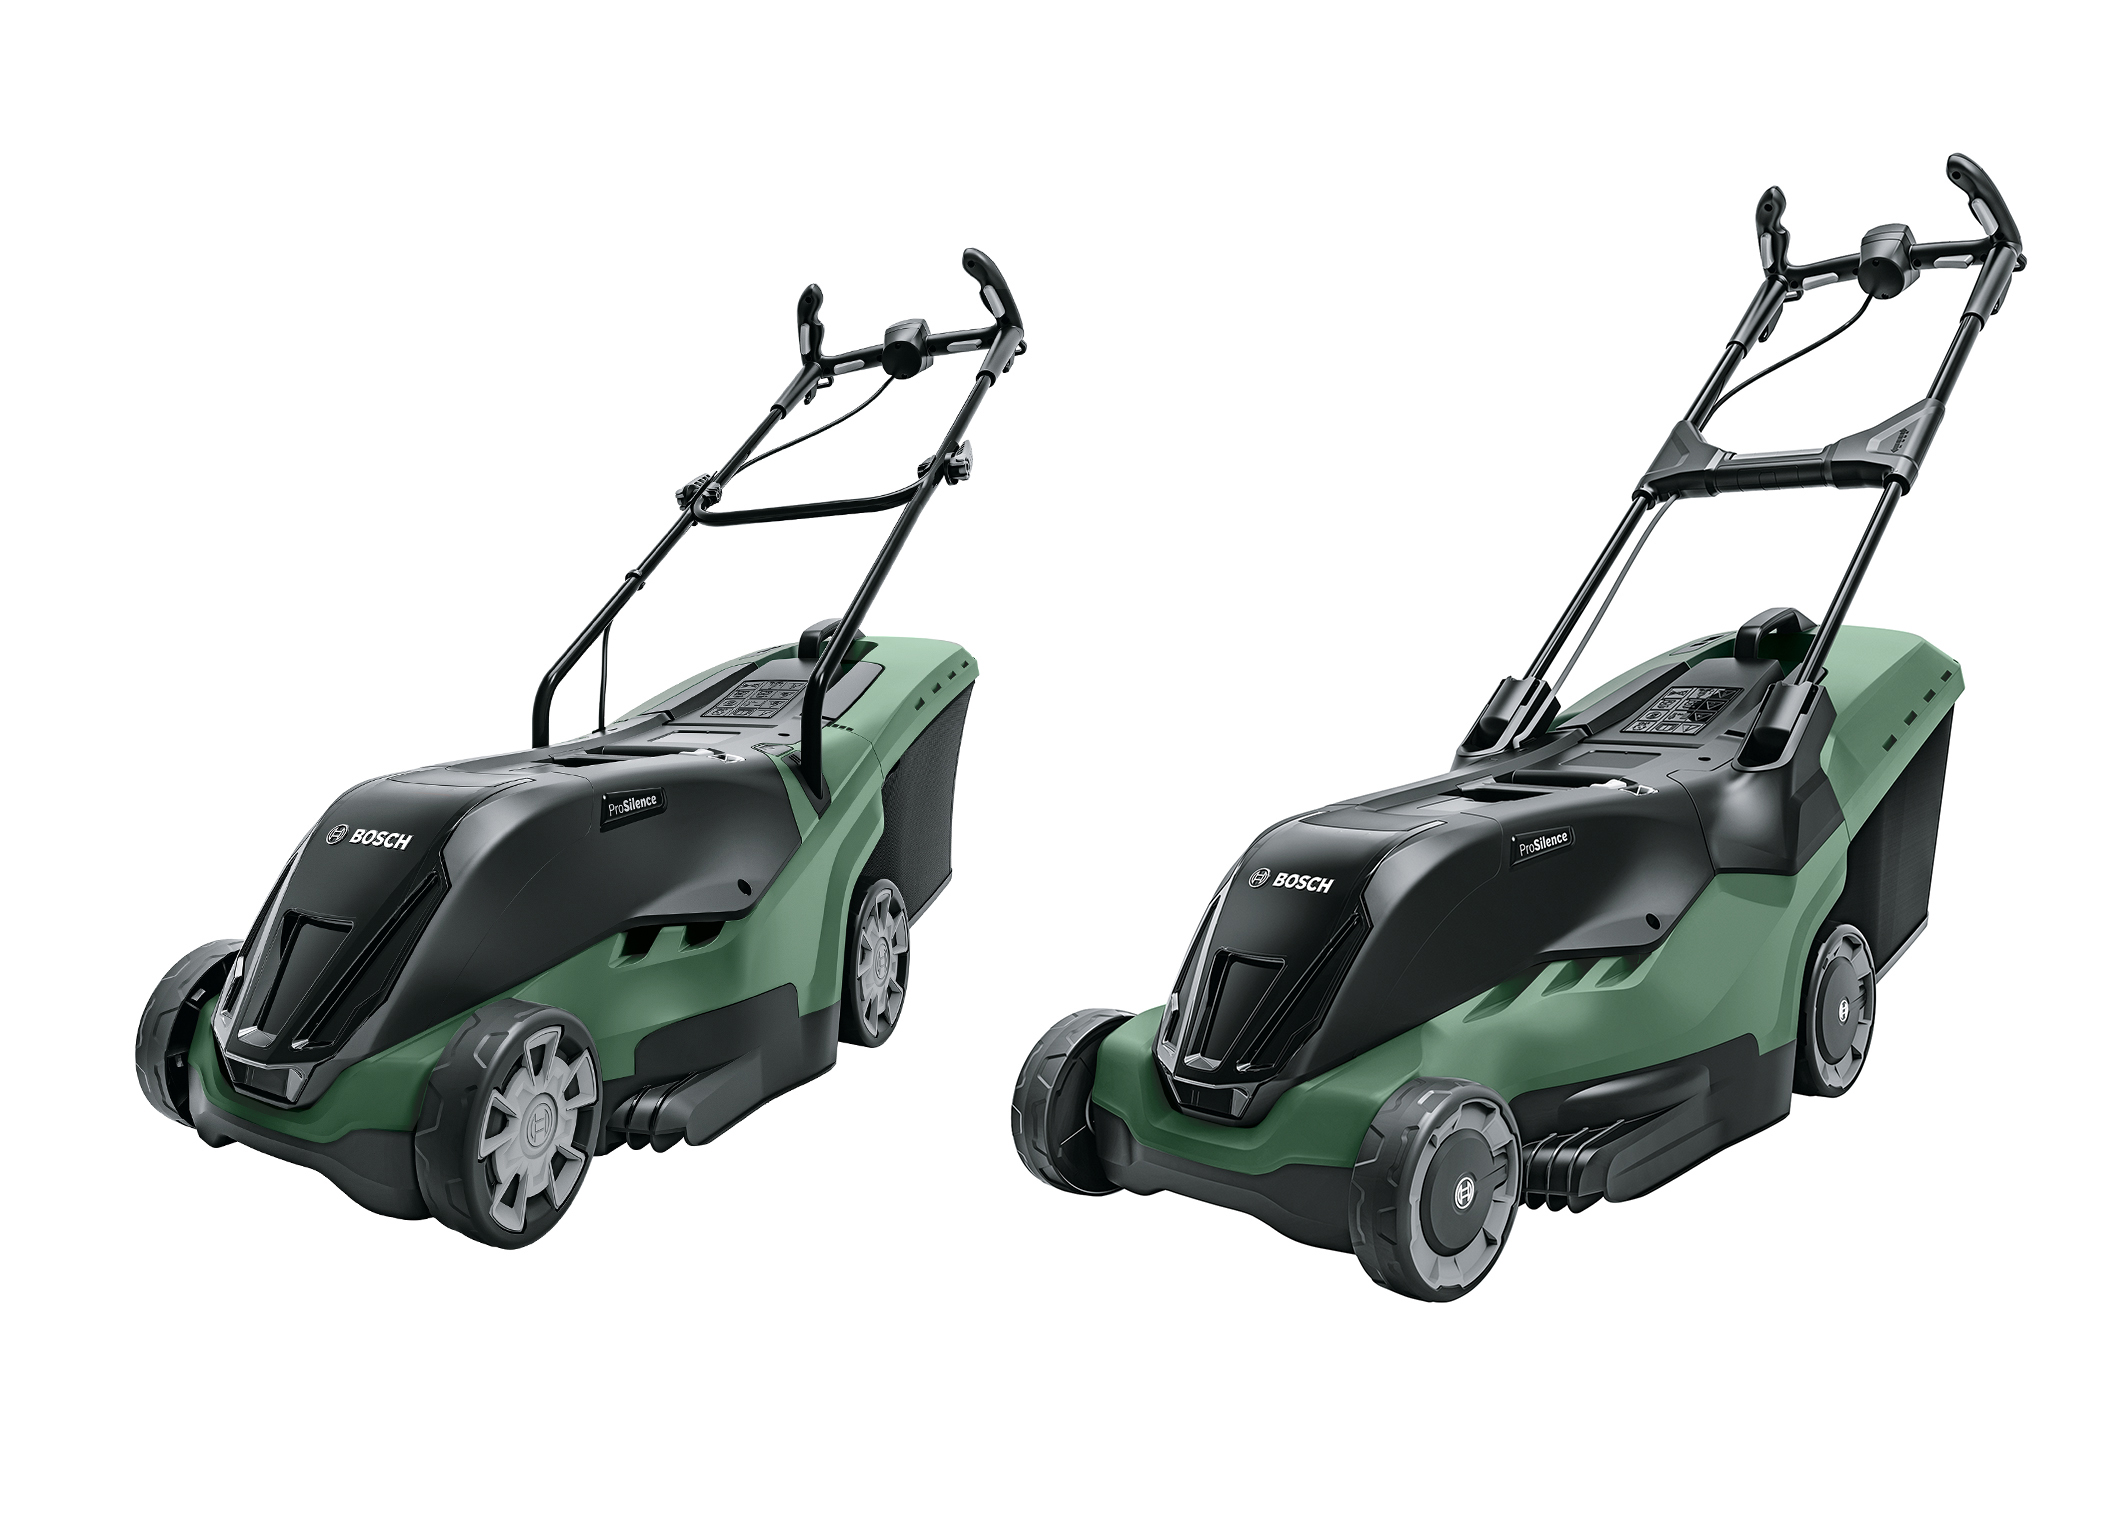 Quietest cordless high-performance mowers on the market: The new ProSilence Rotak series from Bosch